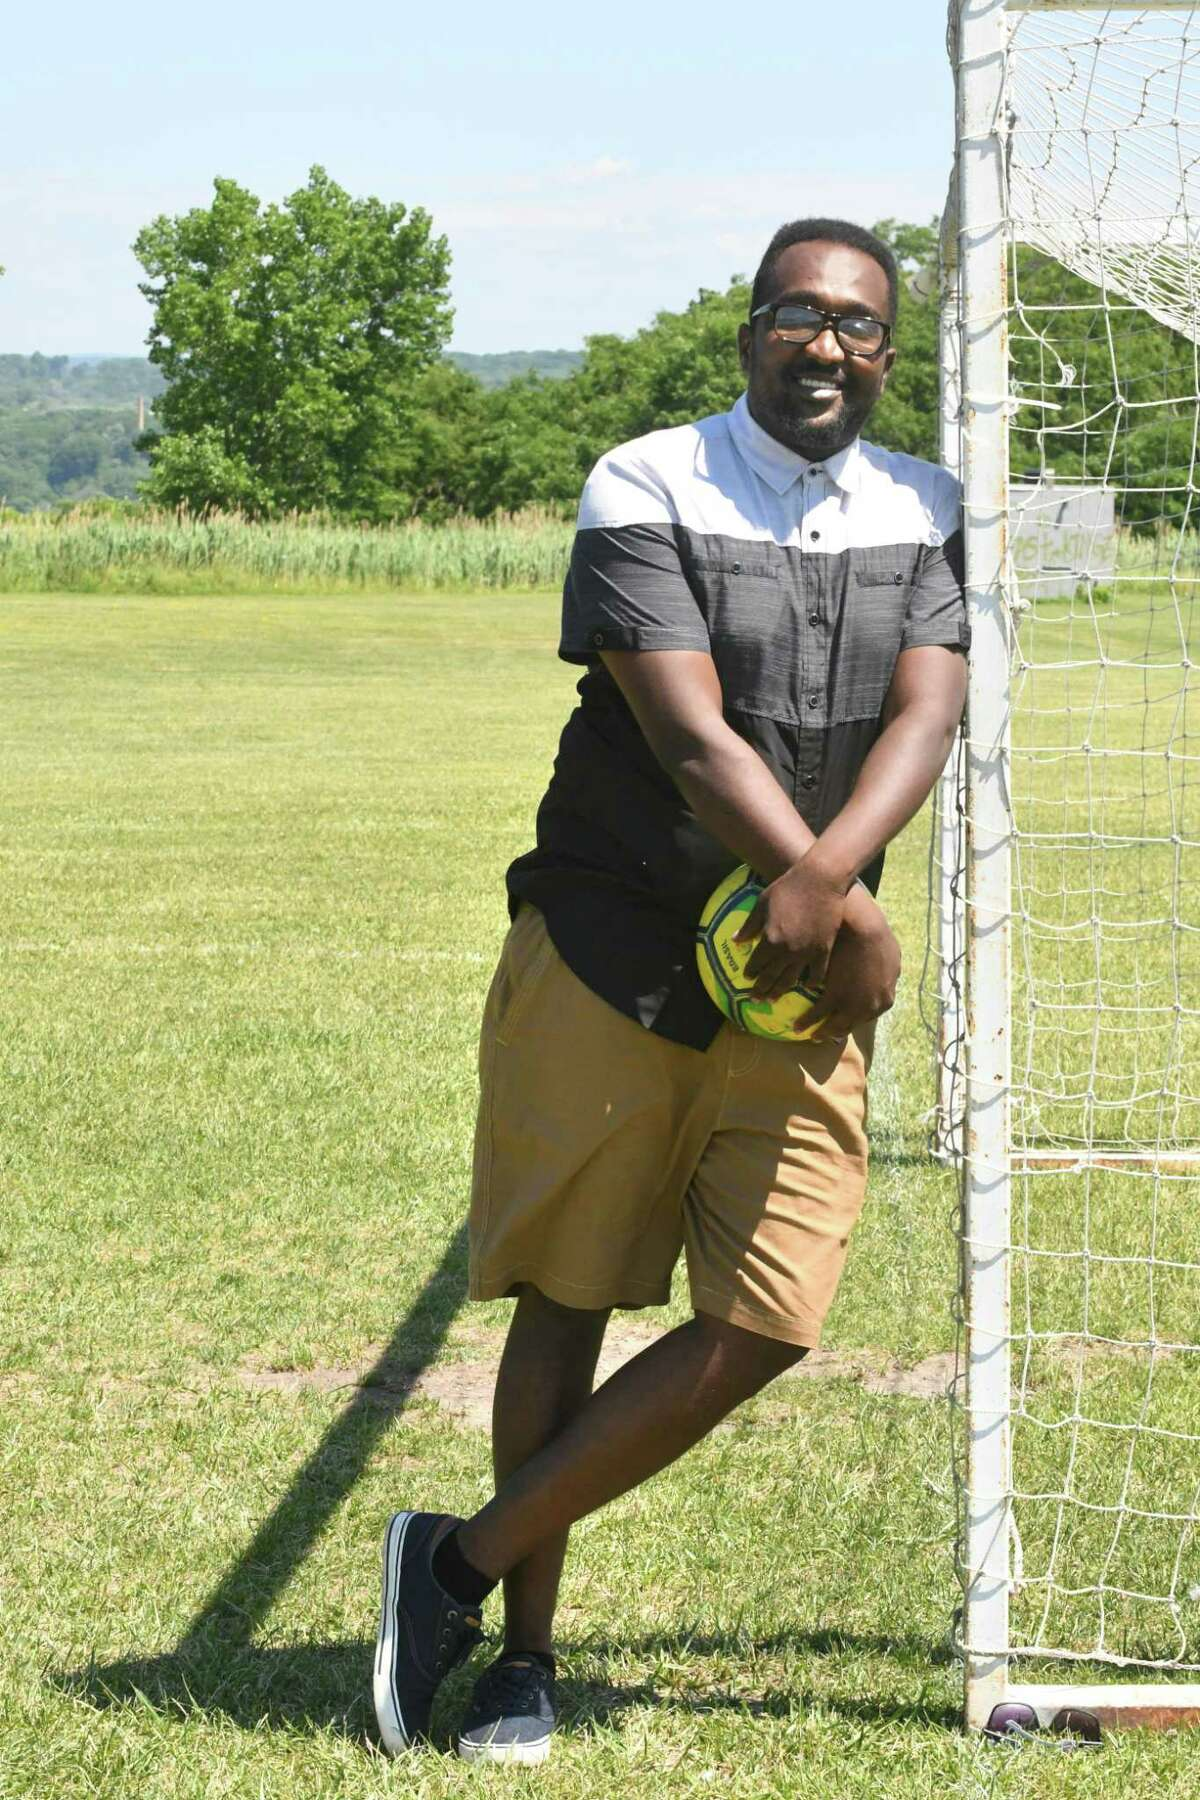 Soccer coach Coach Amjad Abdalla stands at the goal at Hoffman Park on Friday, June 29, 2018 in Albany, N.Y. (Lori Van Buren/Times Union)